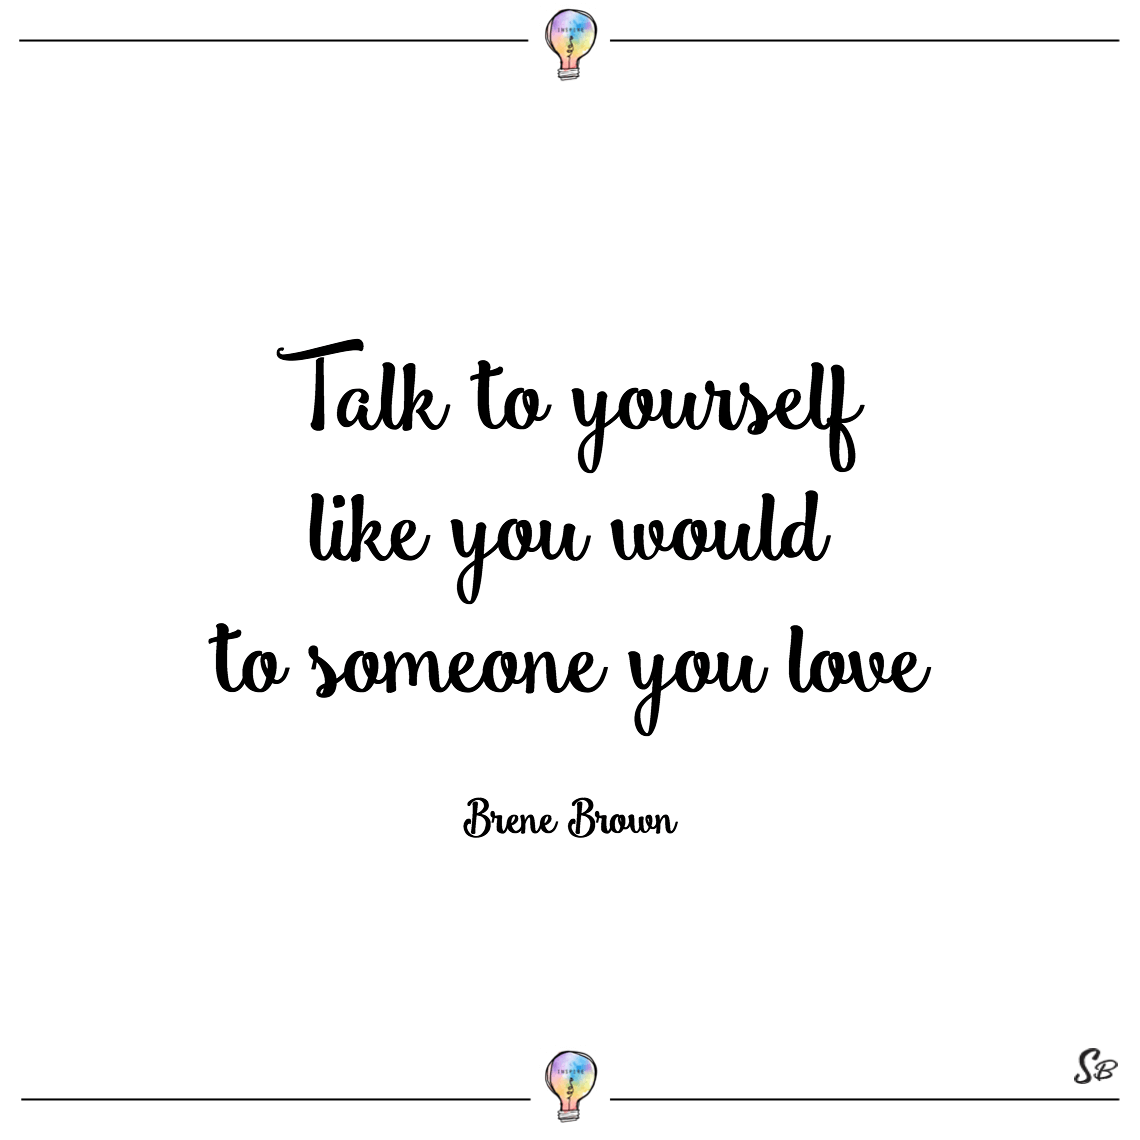 Talk to yourself like you would to someone you love brene brown